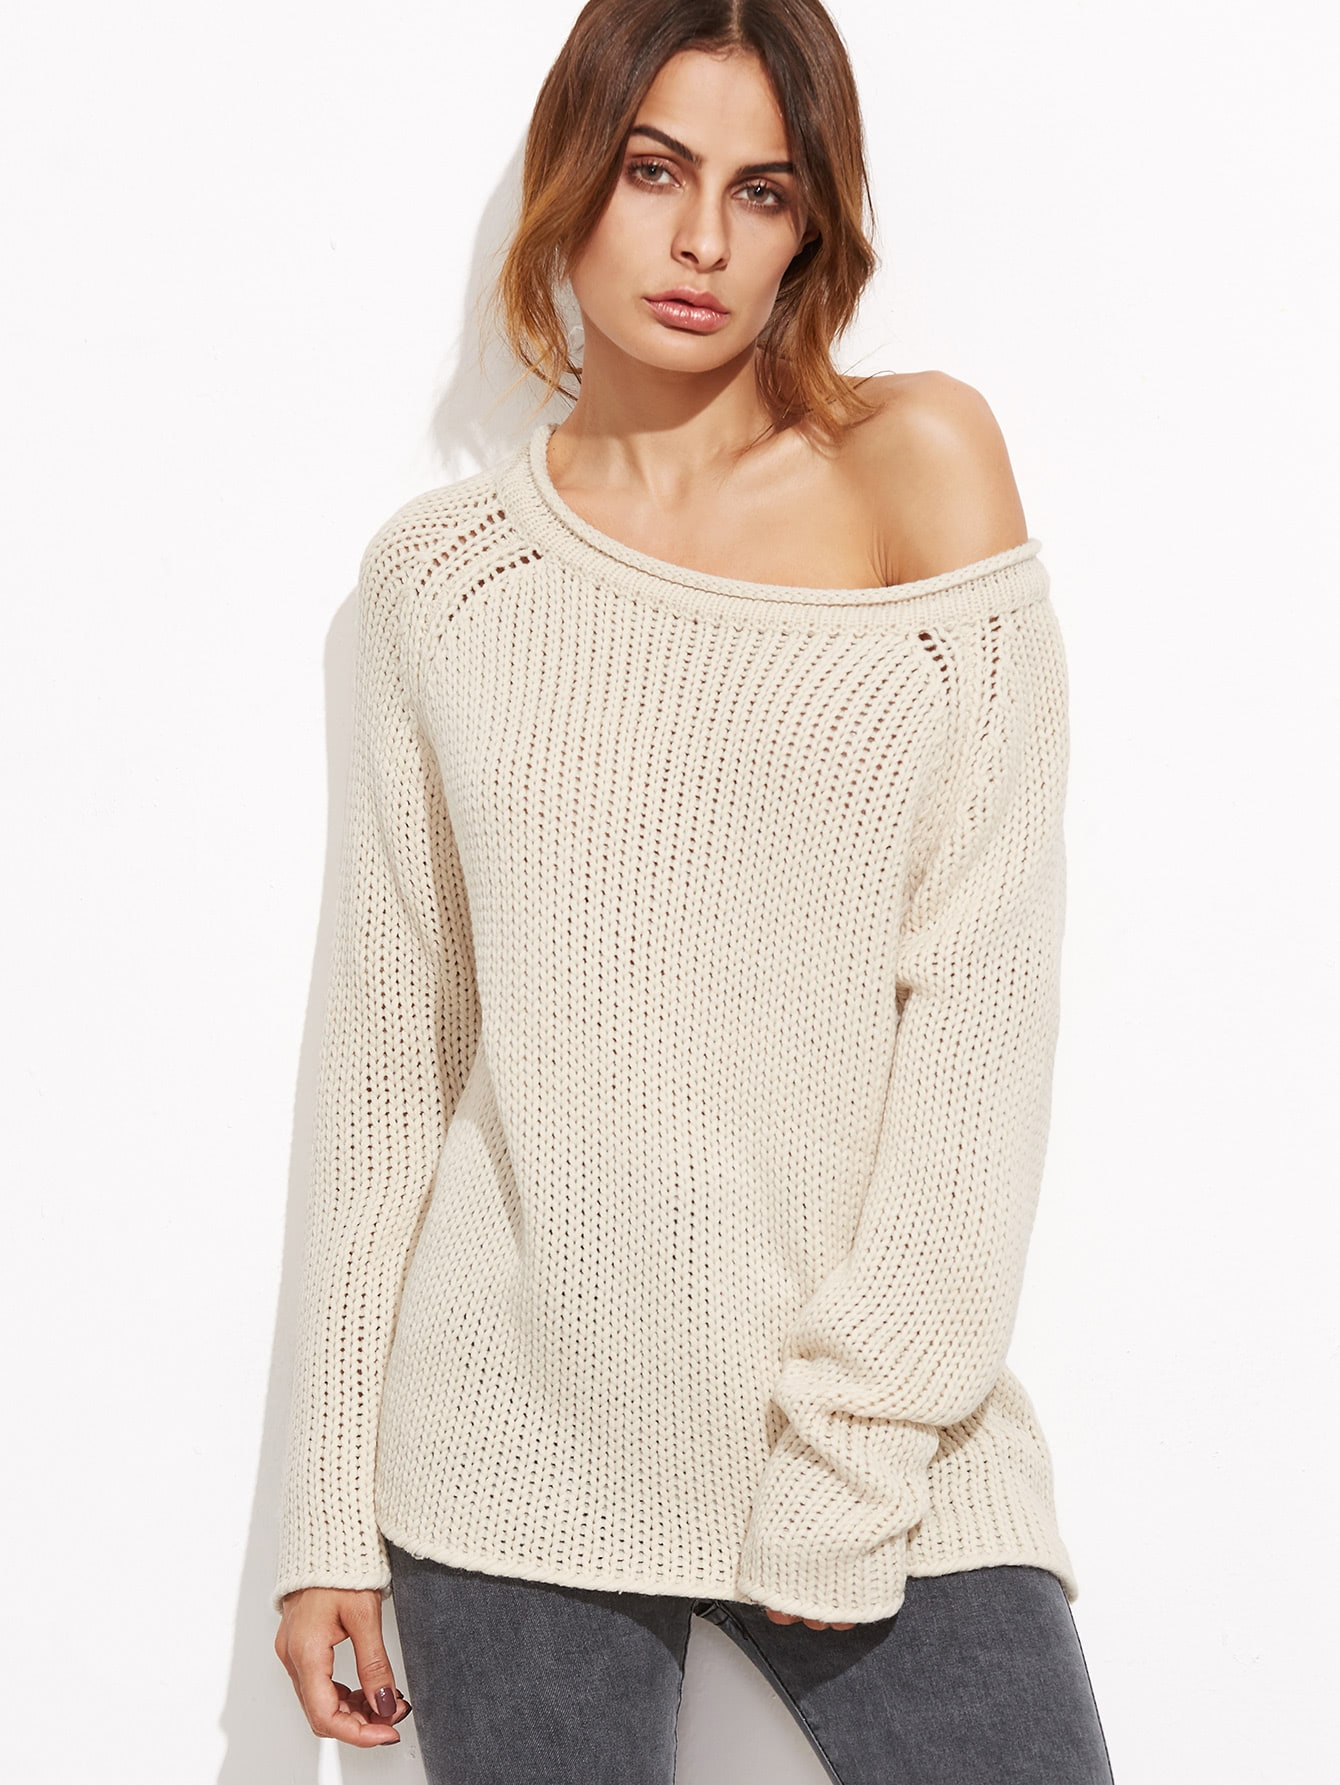 Apricot Boat Neck Raglan Sleeve Loose Knit Sweater sweater161007469